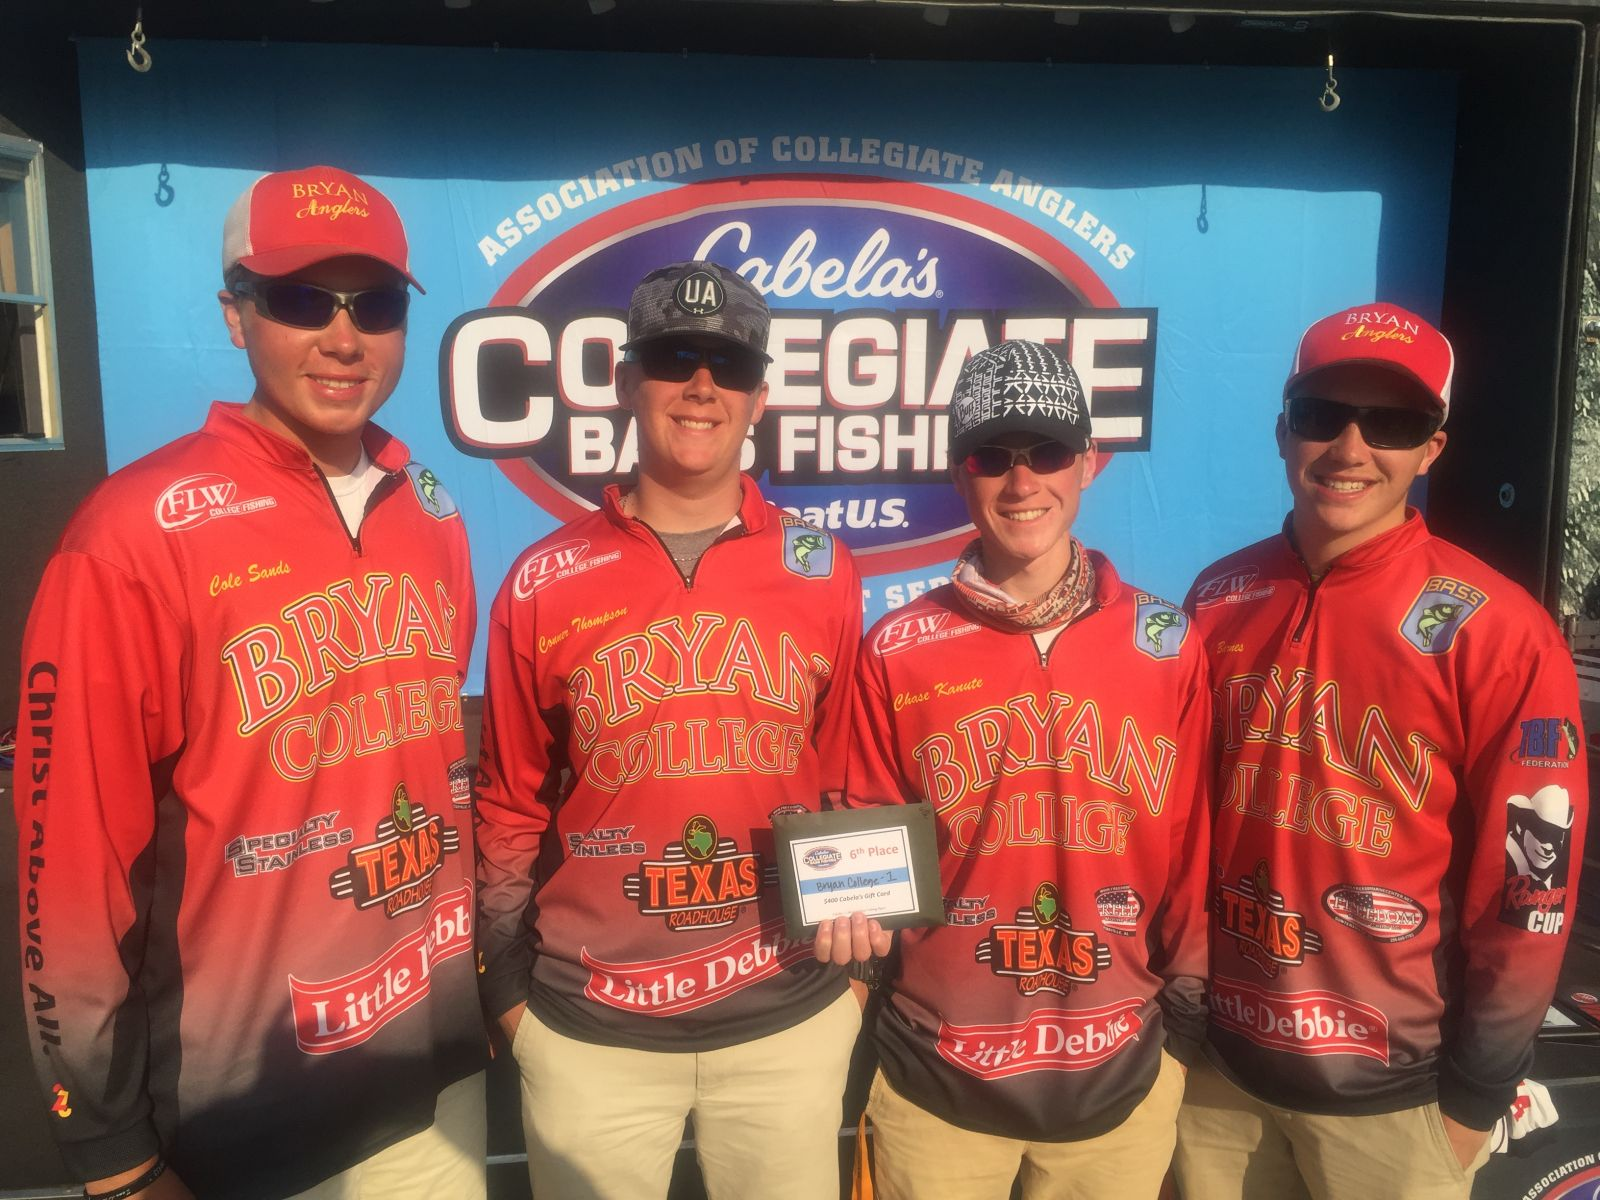 lions excel in cabela\u0027s collegiate bass fishing open, ranking 2nd2779522 Virginia Tech Apparel #4